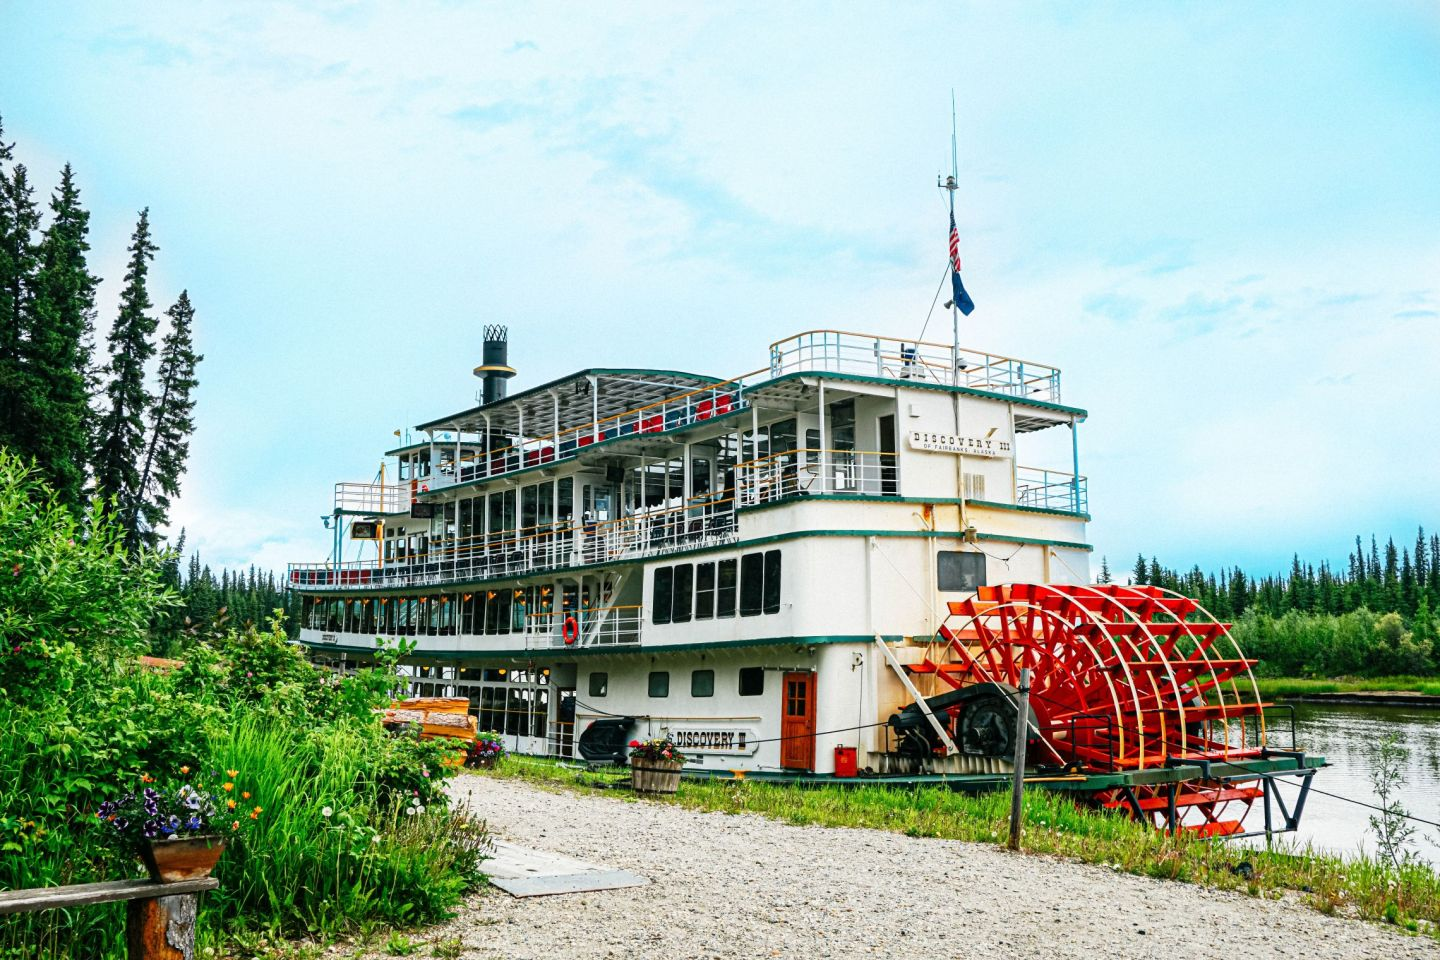 Jump on a Riverboat Cruise to learn more about Fairbanks history.